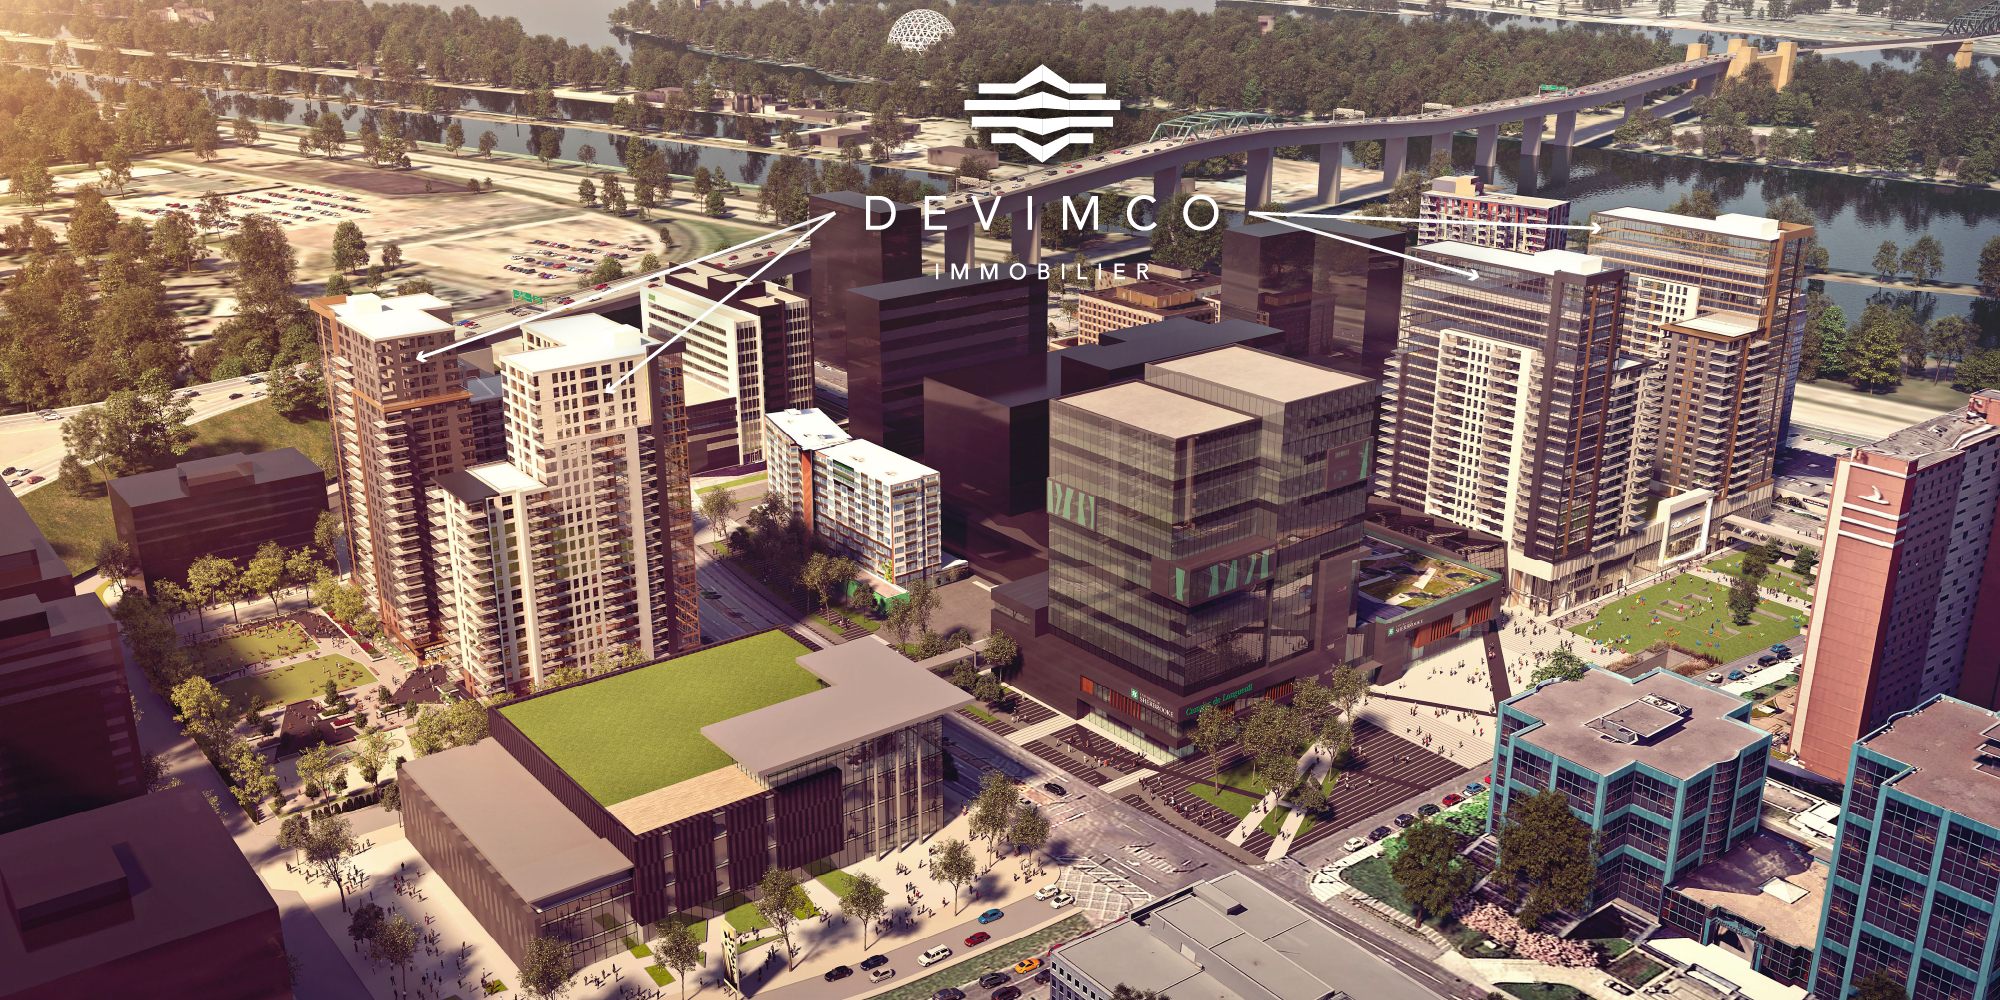 DEVIMCO TAKES AN IMPORTANT STEP IN COMPLETING A REVOLUTIONARY $500-MILLION PROJECT TAILORED TO TELEWORKING